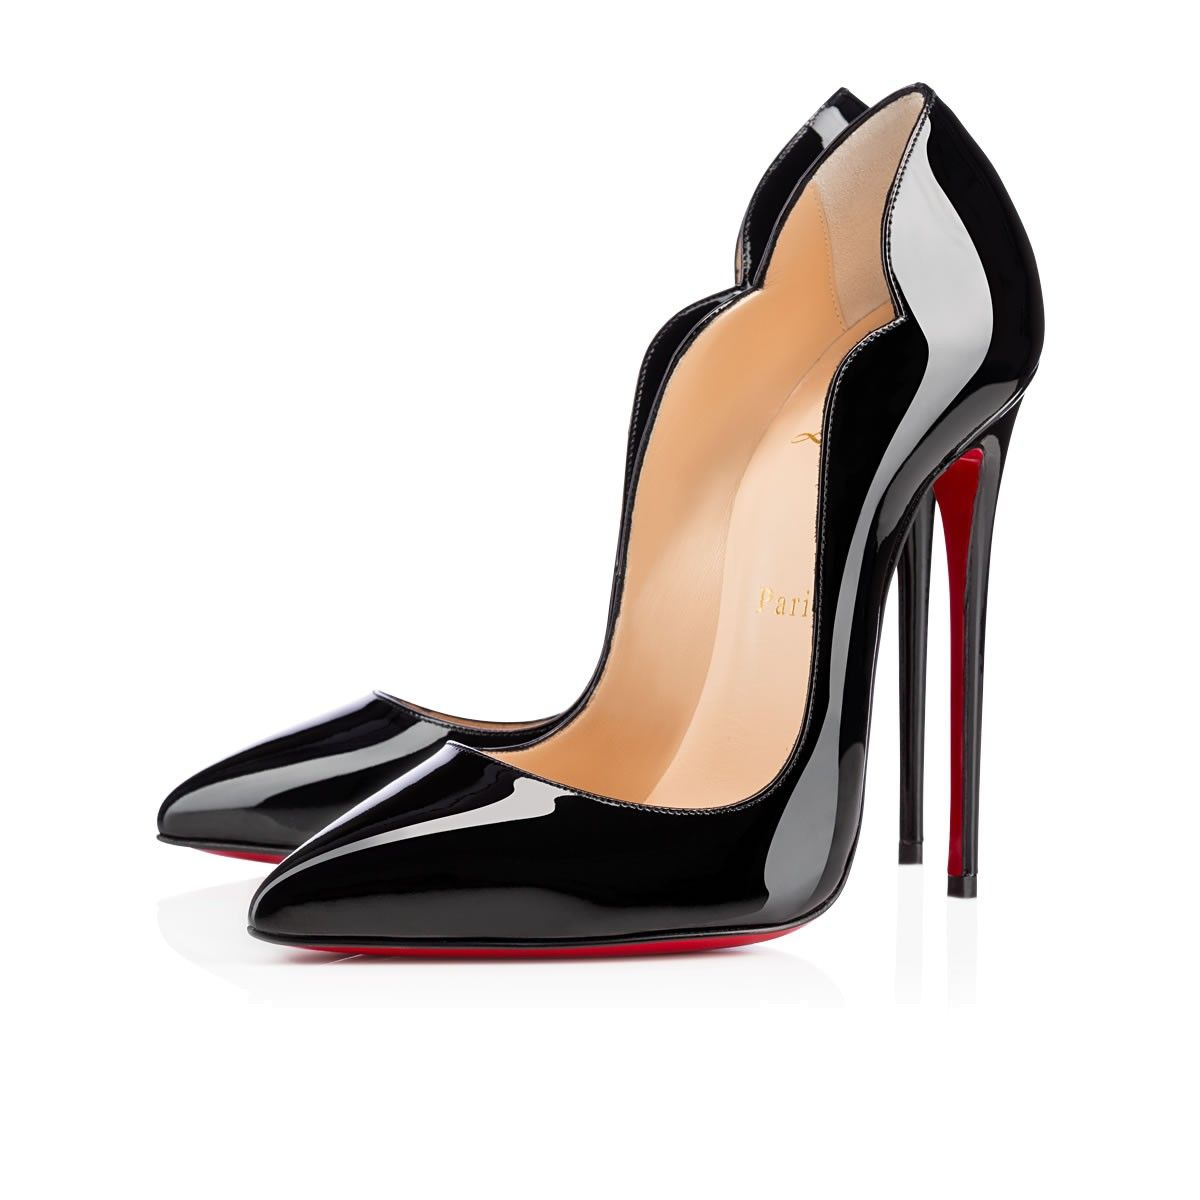 christian louboutin hot chick 120mm patent leather black